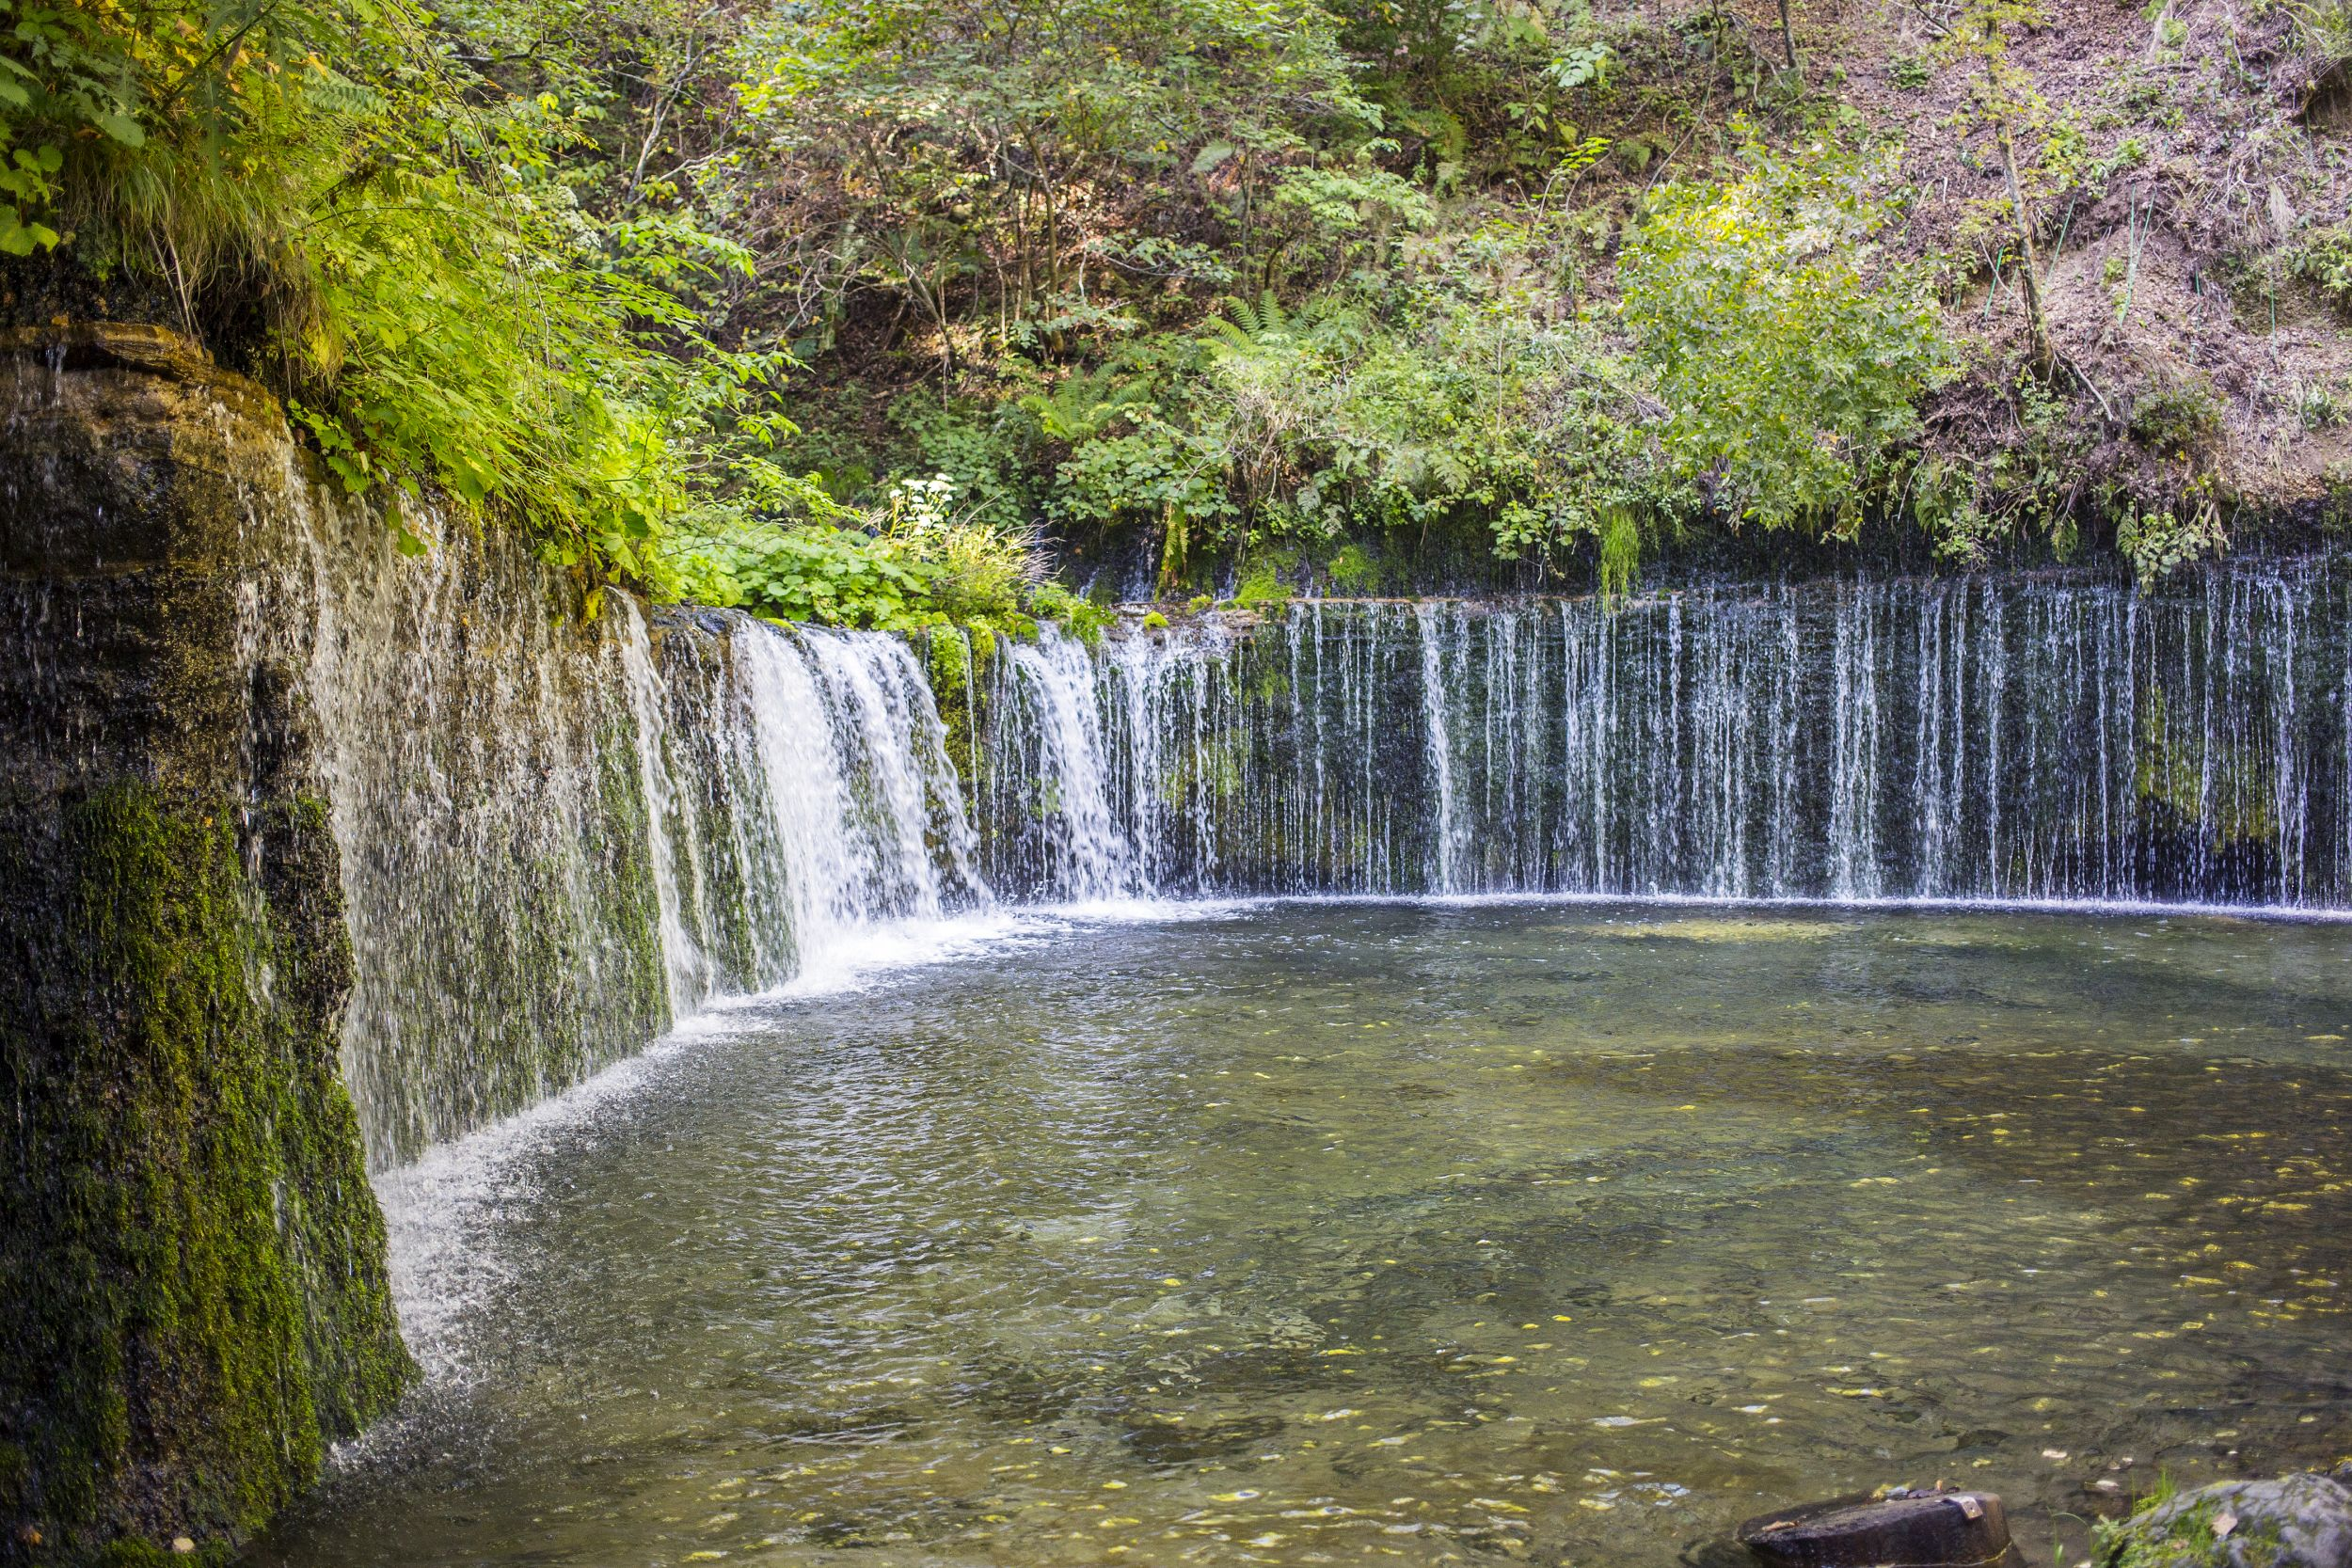 Waterfalls are one of the natural attractions in Karuizawa (David Lovejoy / PA)